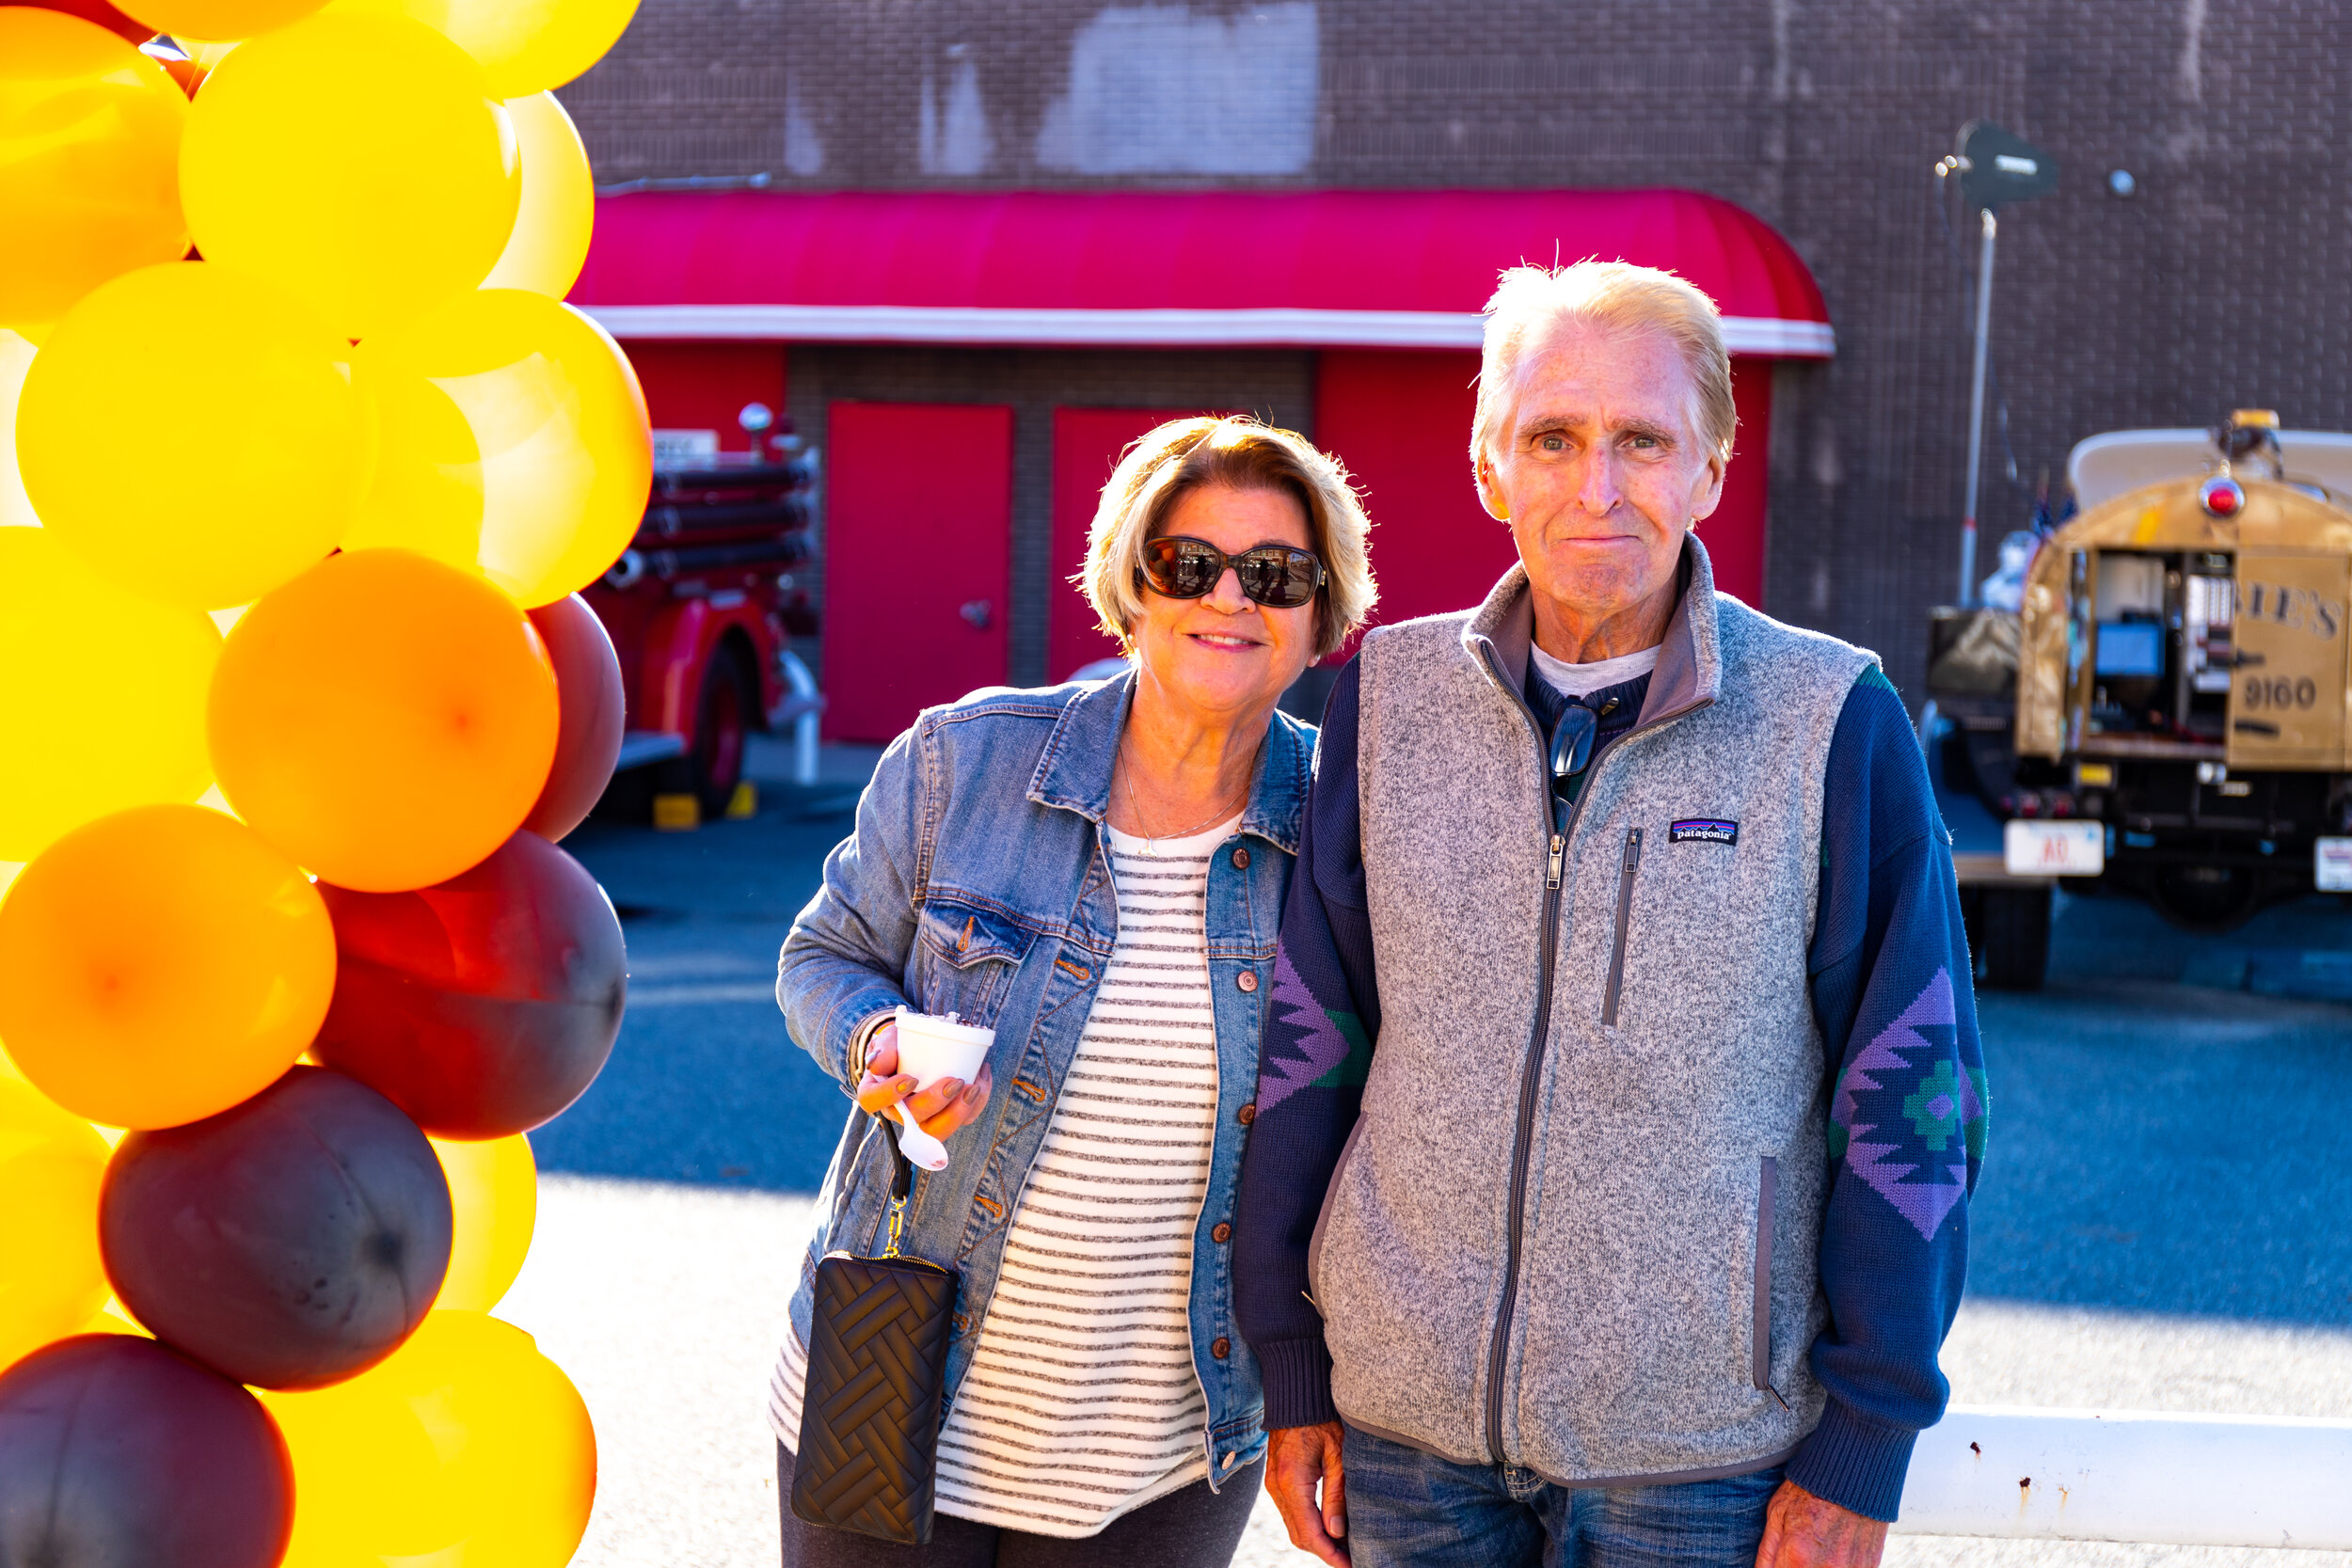 A young couple enjoys the colorful balloons in Burkis Square, compliments of Cristina's Decorations at 62 Hollis Street! Photo credit Itala Keller.